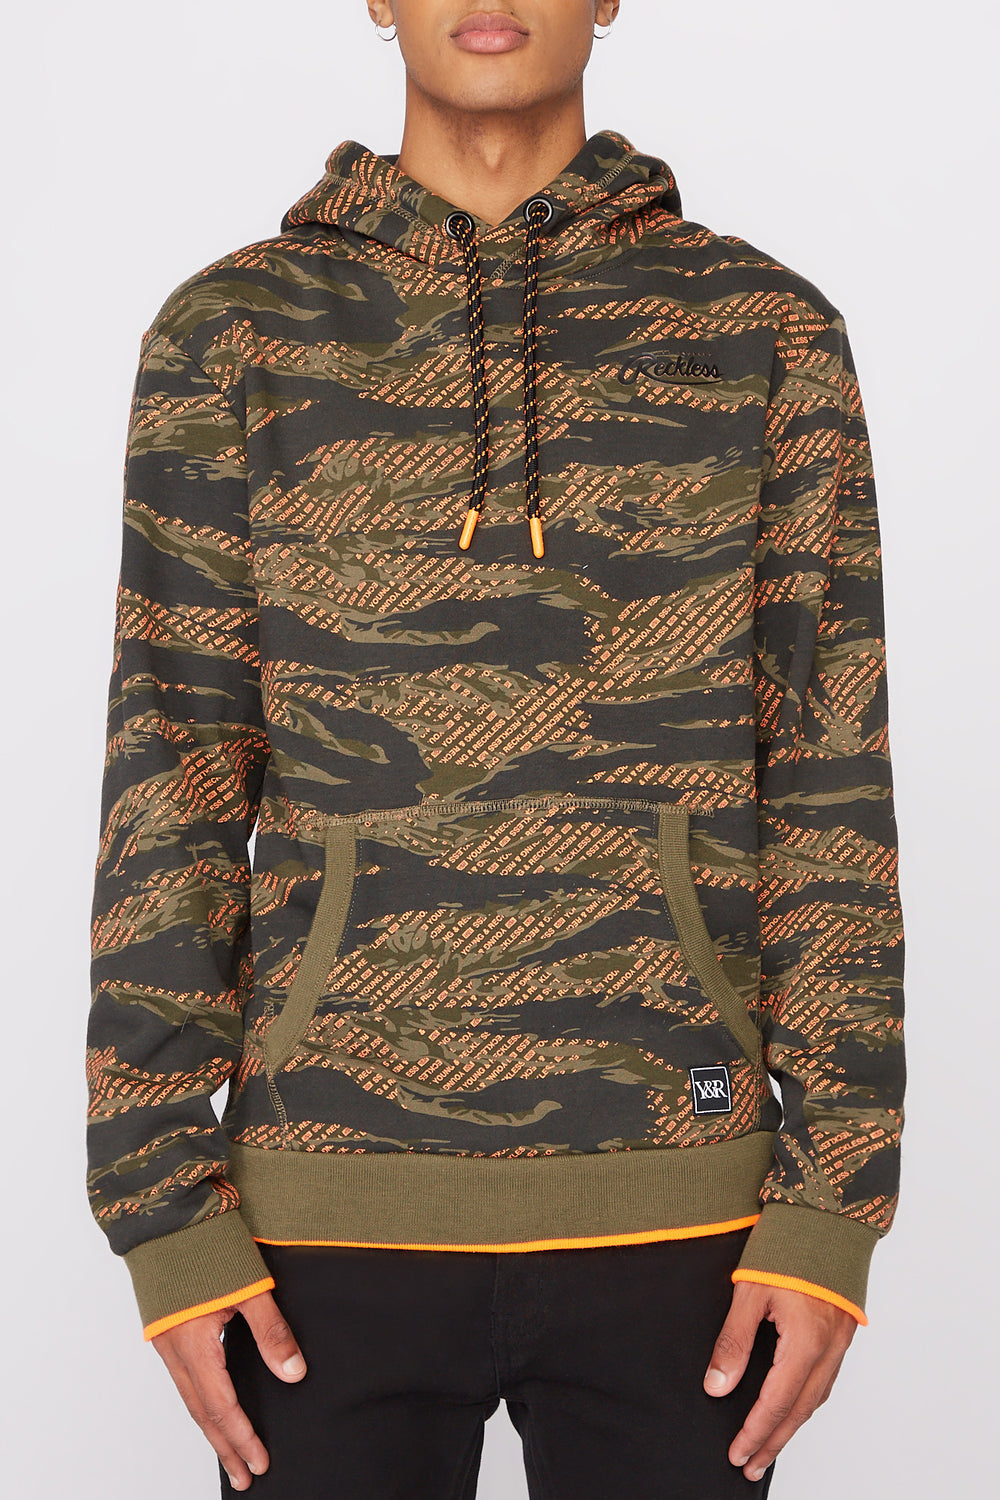 Young & Reckless Mens Tiger Camo & Neon Hoodie Black with White